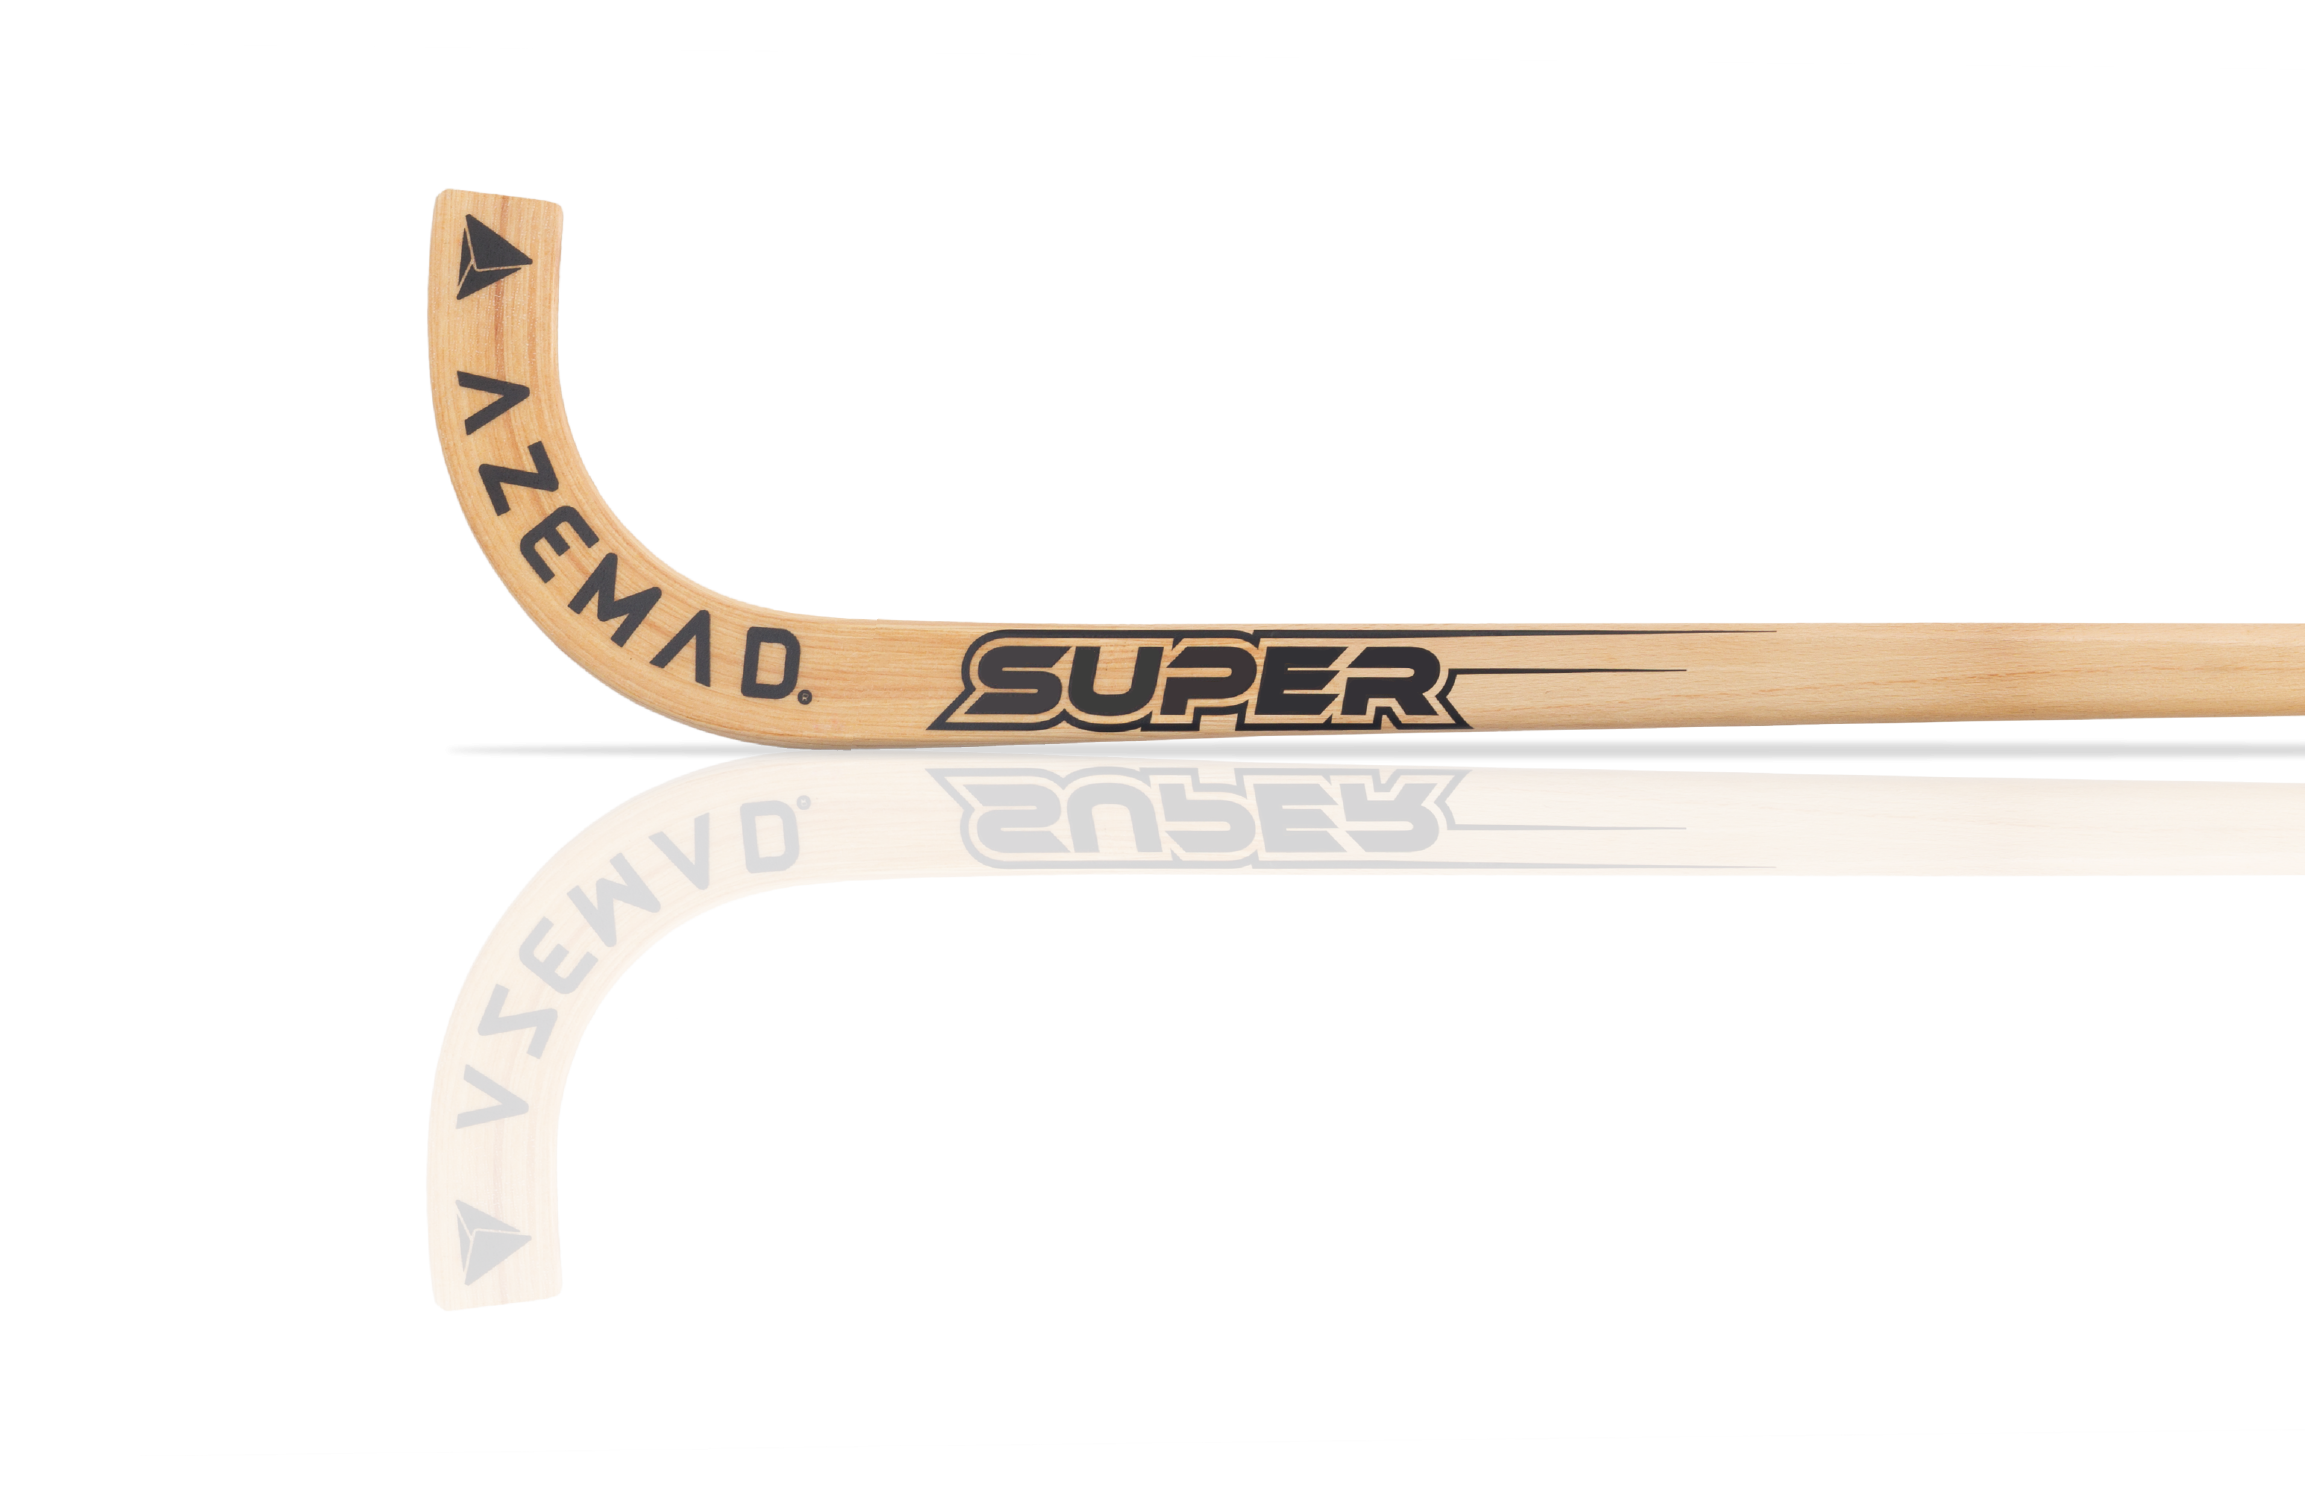 stick azemad super